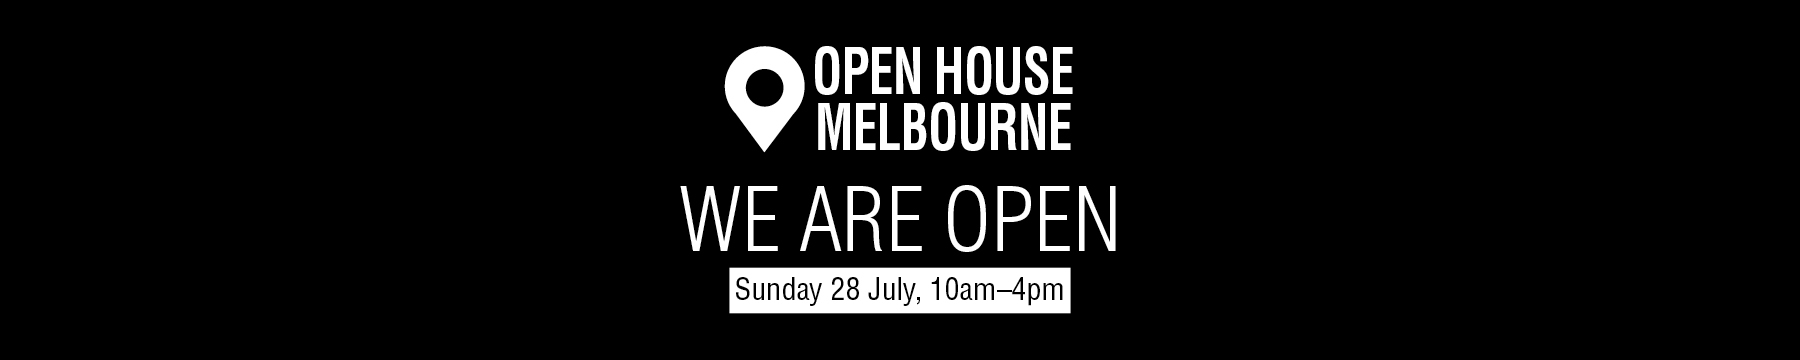 Open House Melbourne 28 July 2019